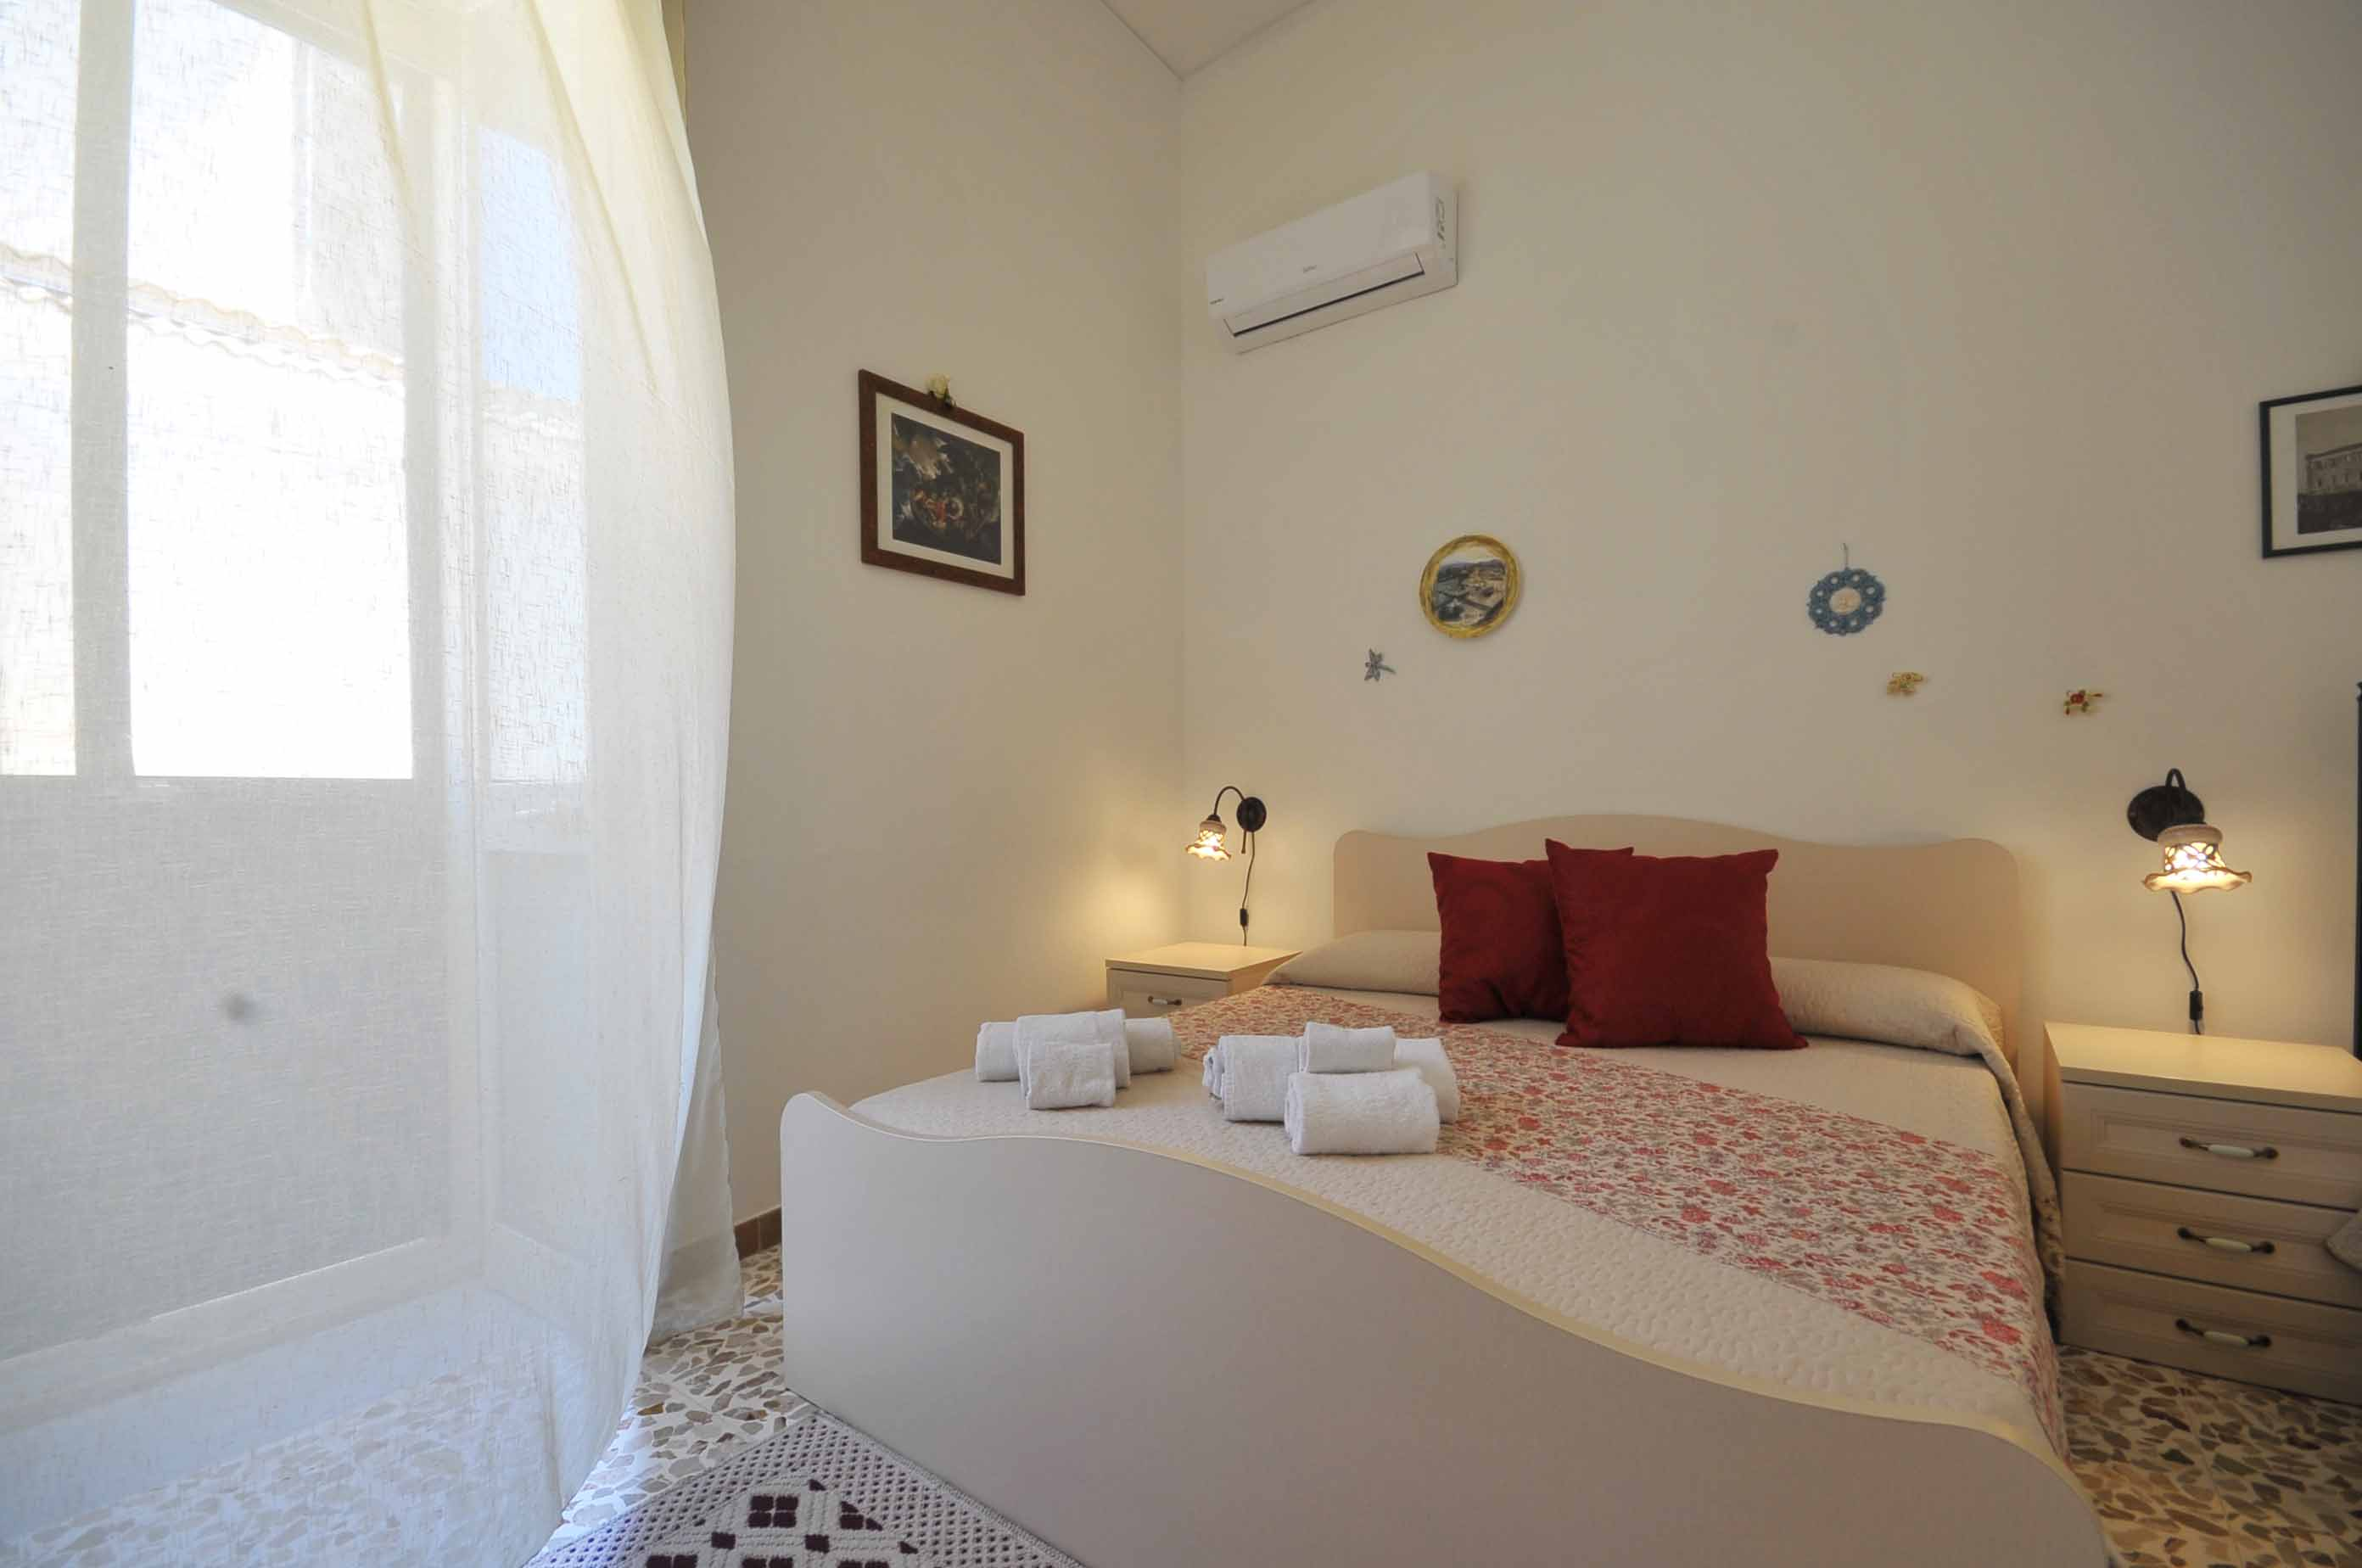 Afrodite_tripla_B&B_Avola_siracusa_bed_and_breakfast_4